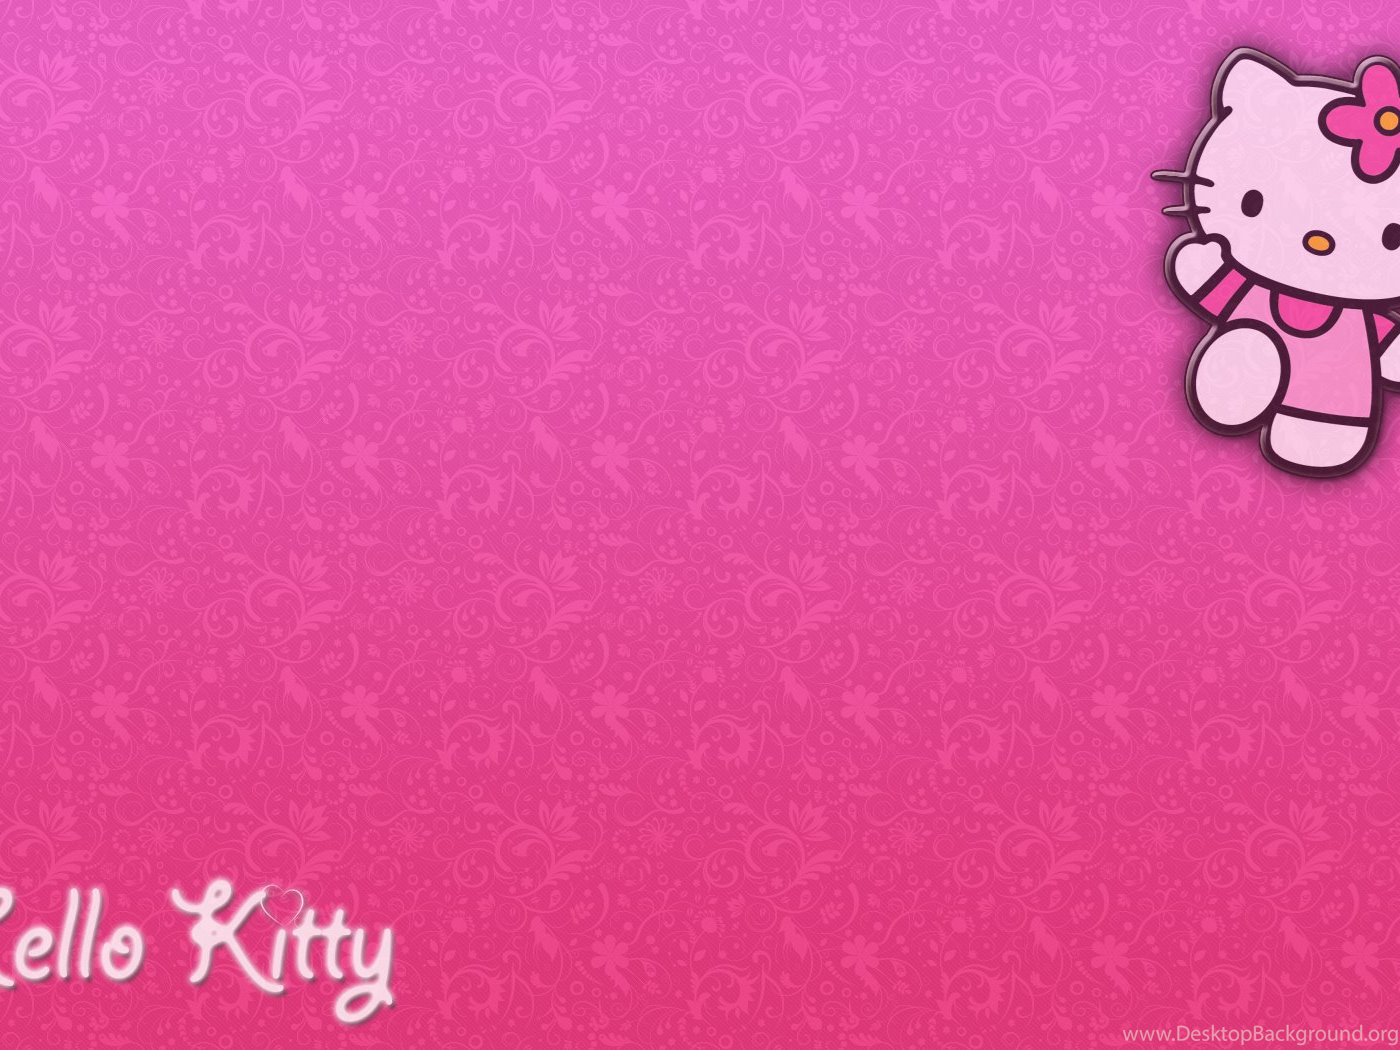 Top Wallpaper Hello Kitty Note 3 - 531152_hd-wallpapers-hello-kitty-wallpapers-cave_1680x1050_h  You Should Have_991665.png